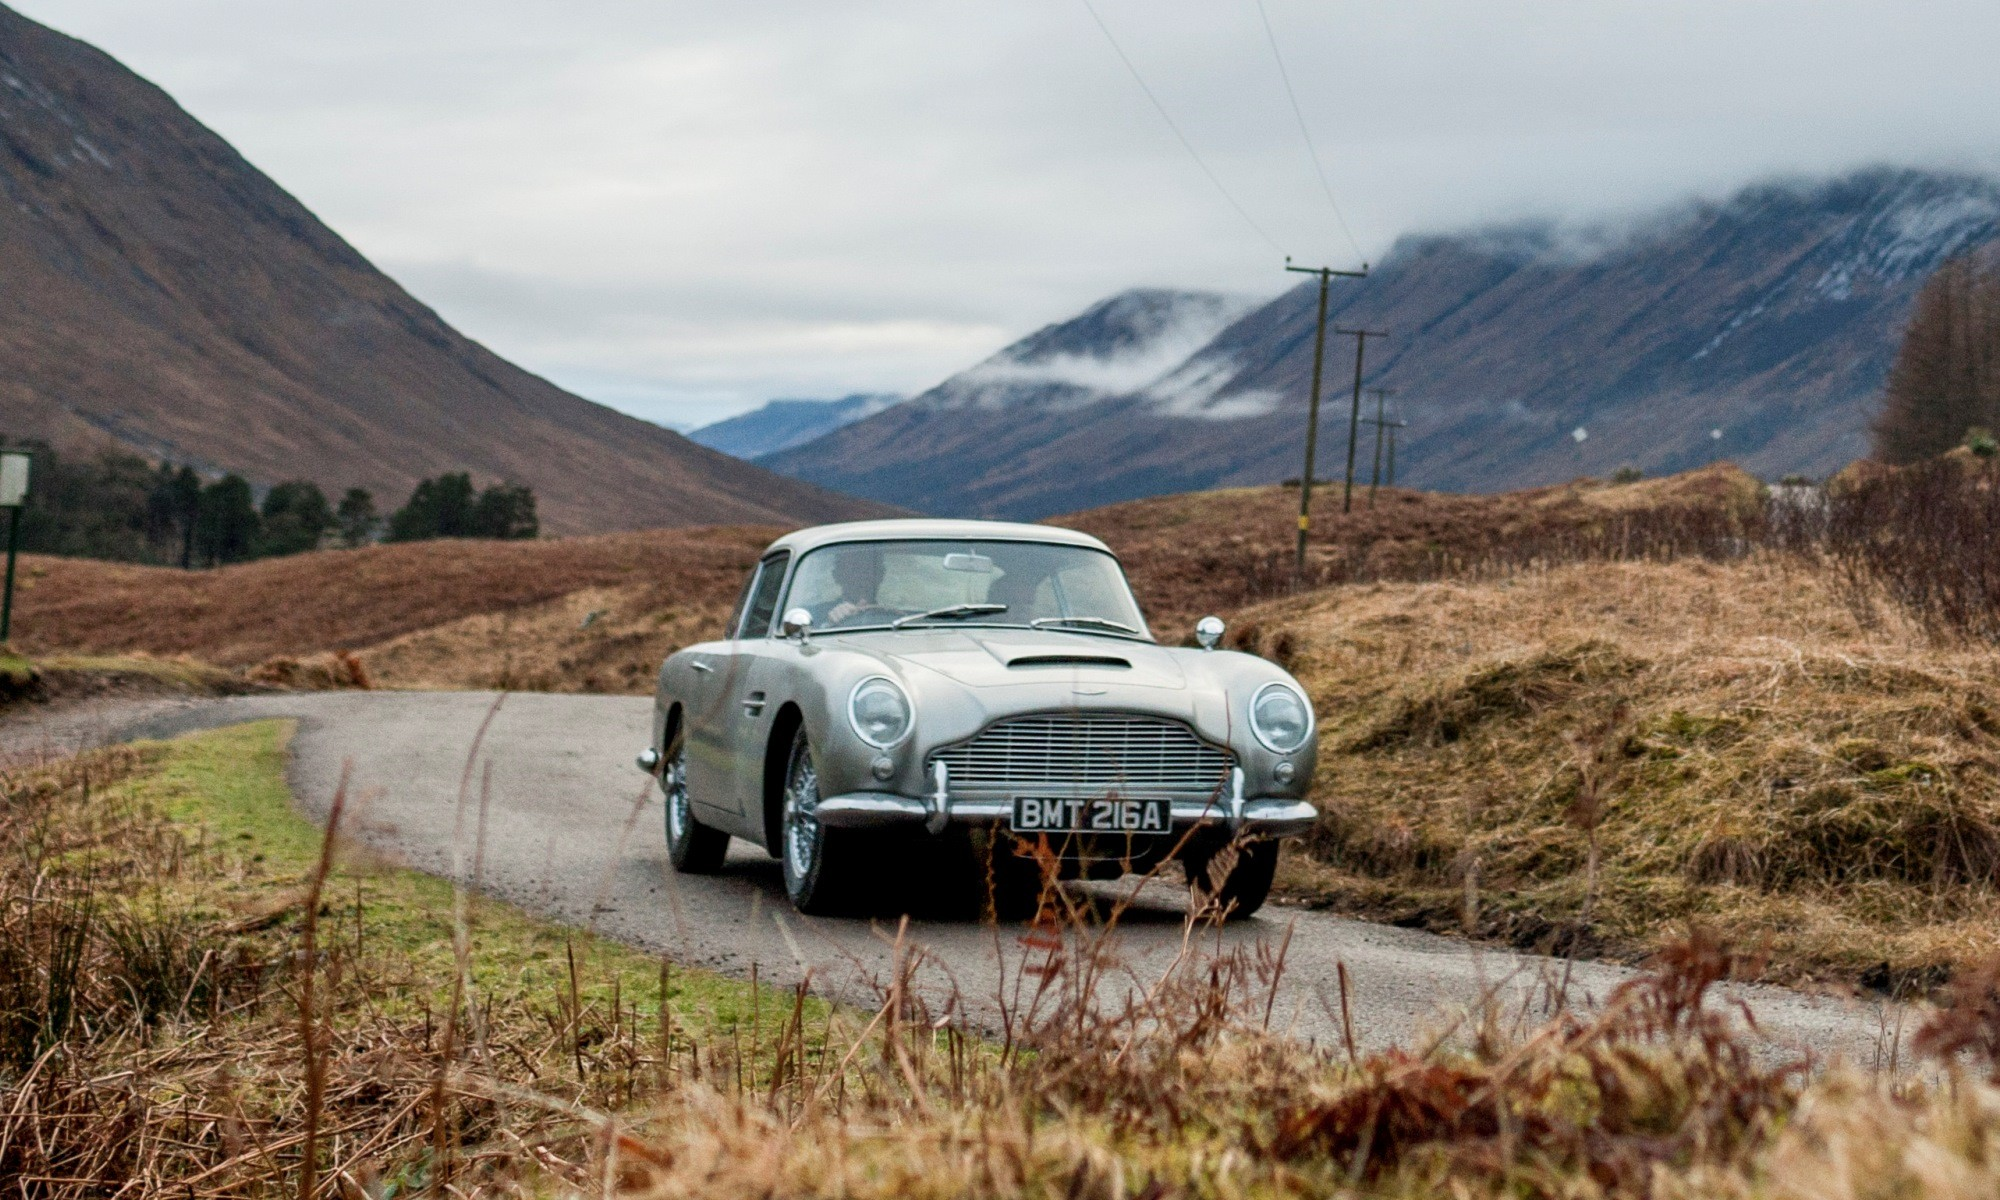 The Aston Martin DB5 as seen in Skyfall